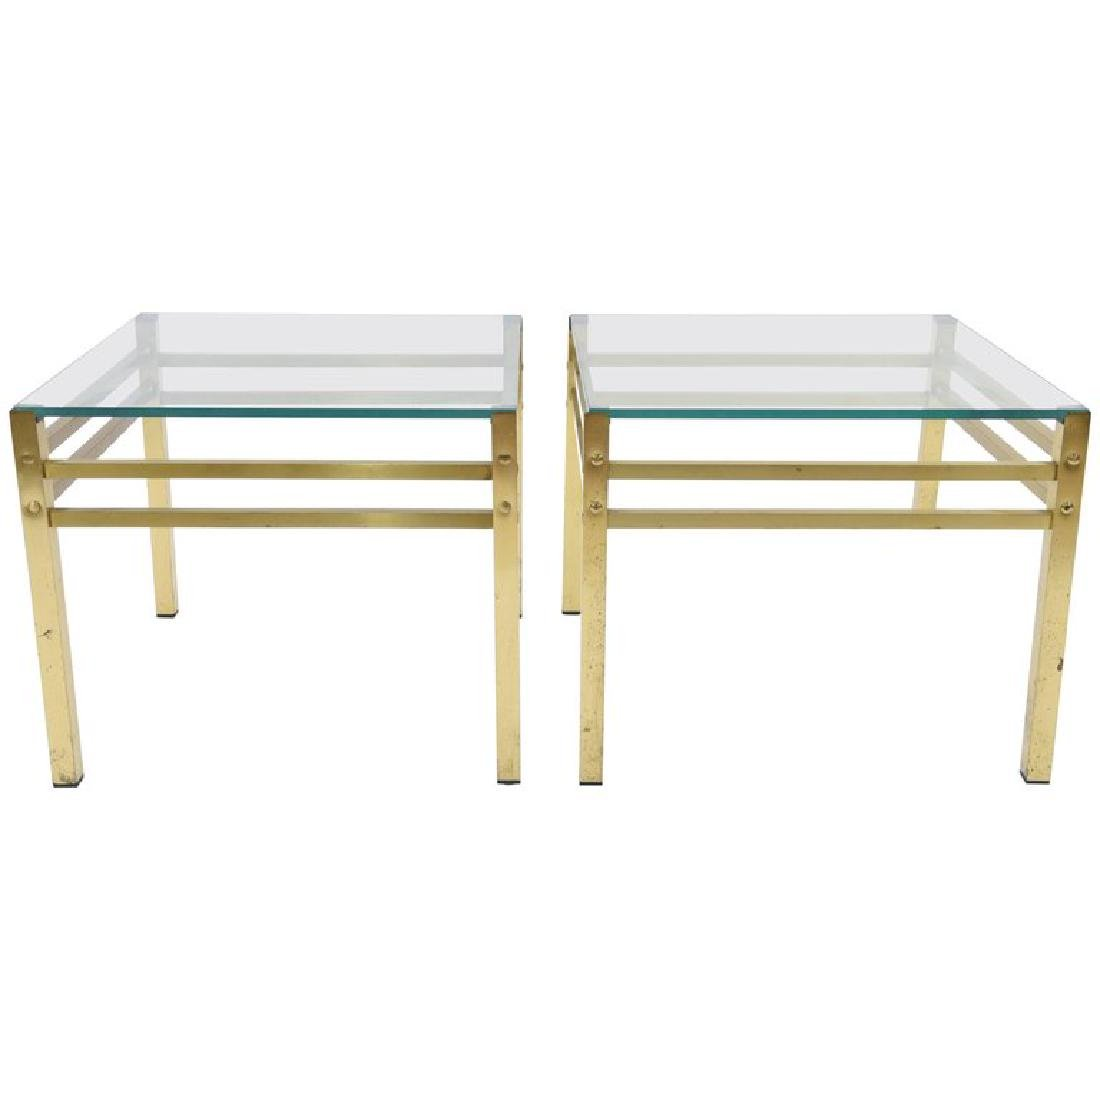 PAIR OF MID-CENTURY BRASS & GLASS SIDE TABLES